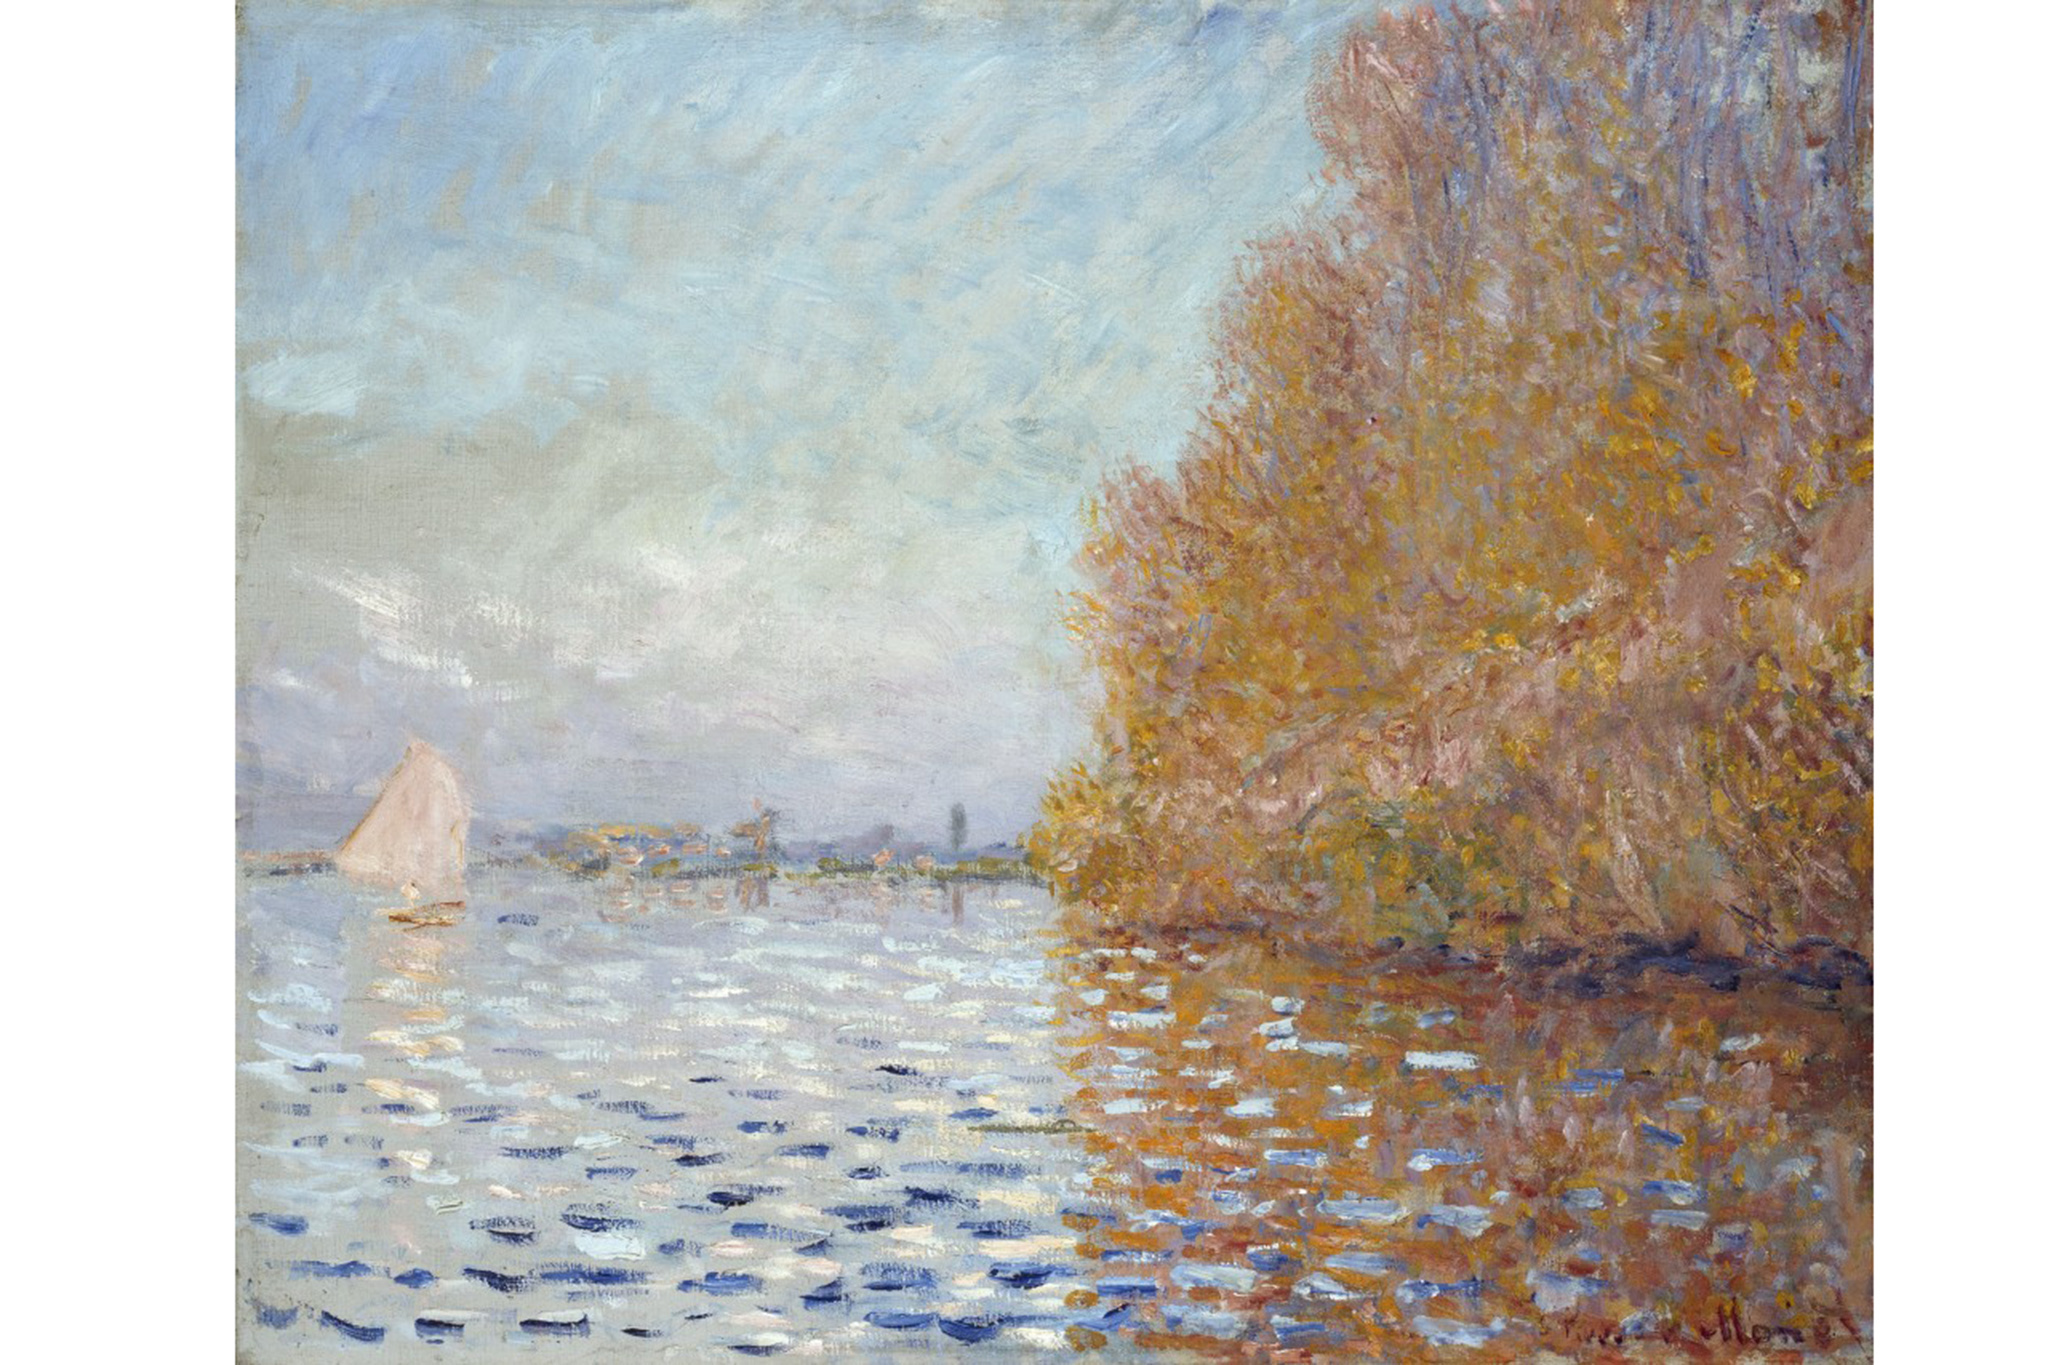 Claude Monet, Argenteuil Basin with a Single Sailboat